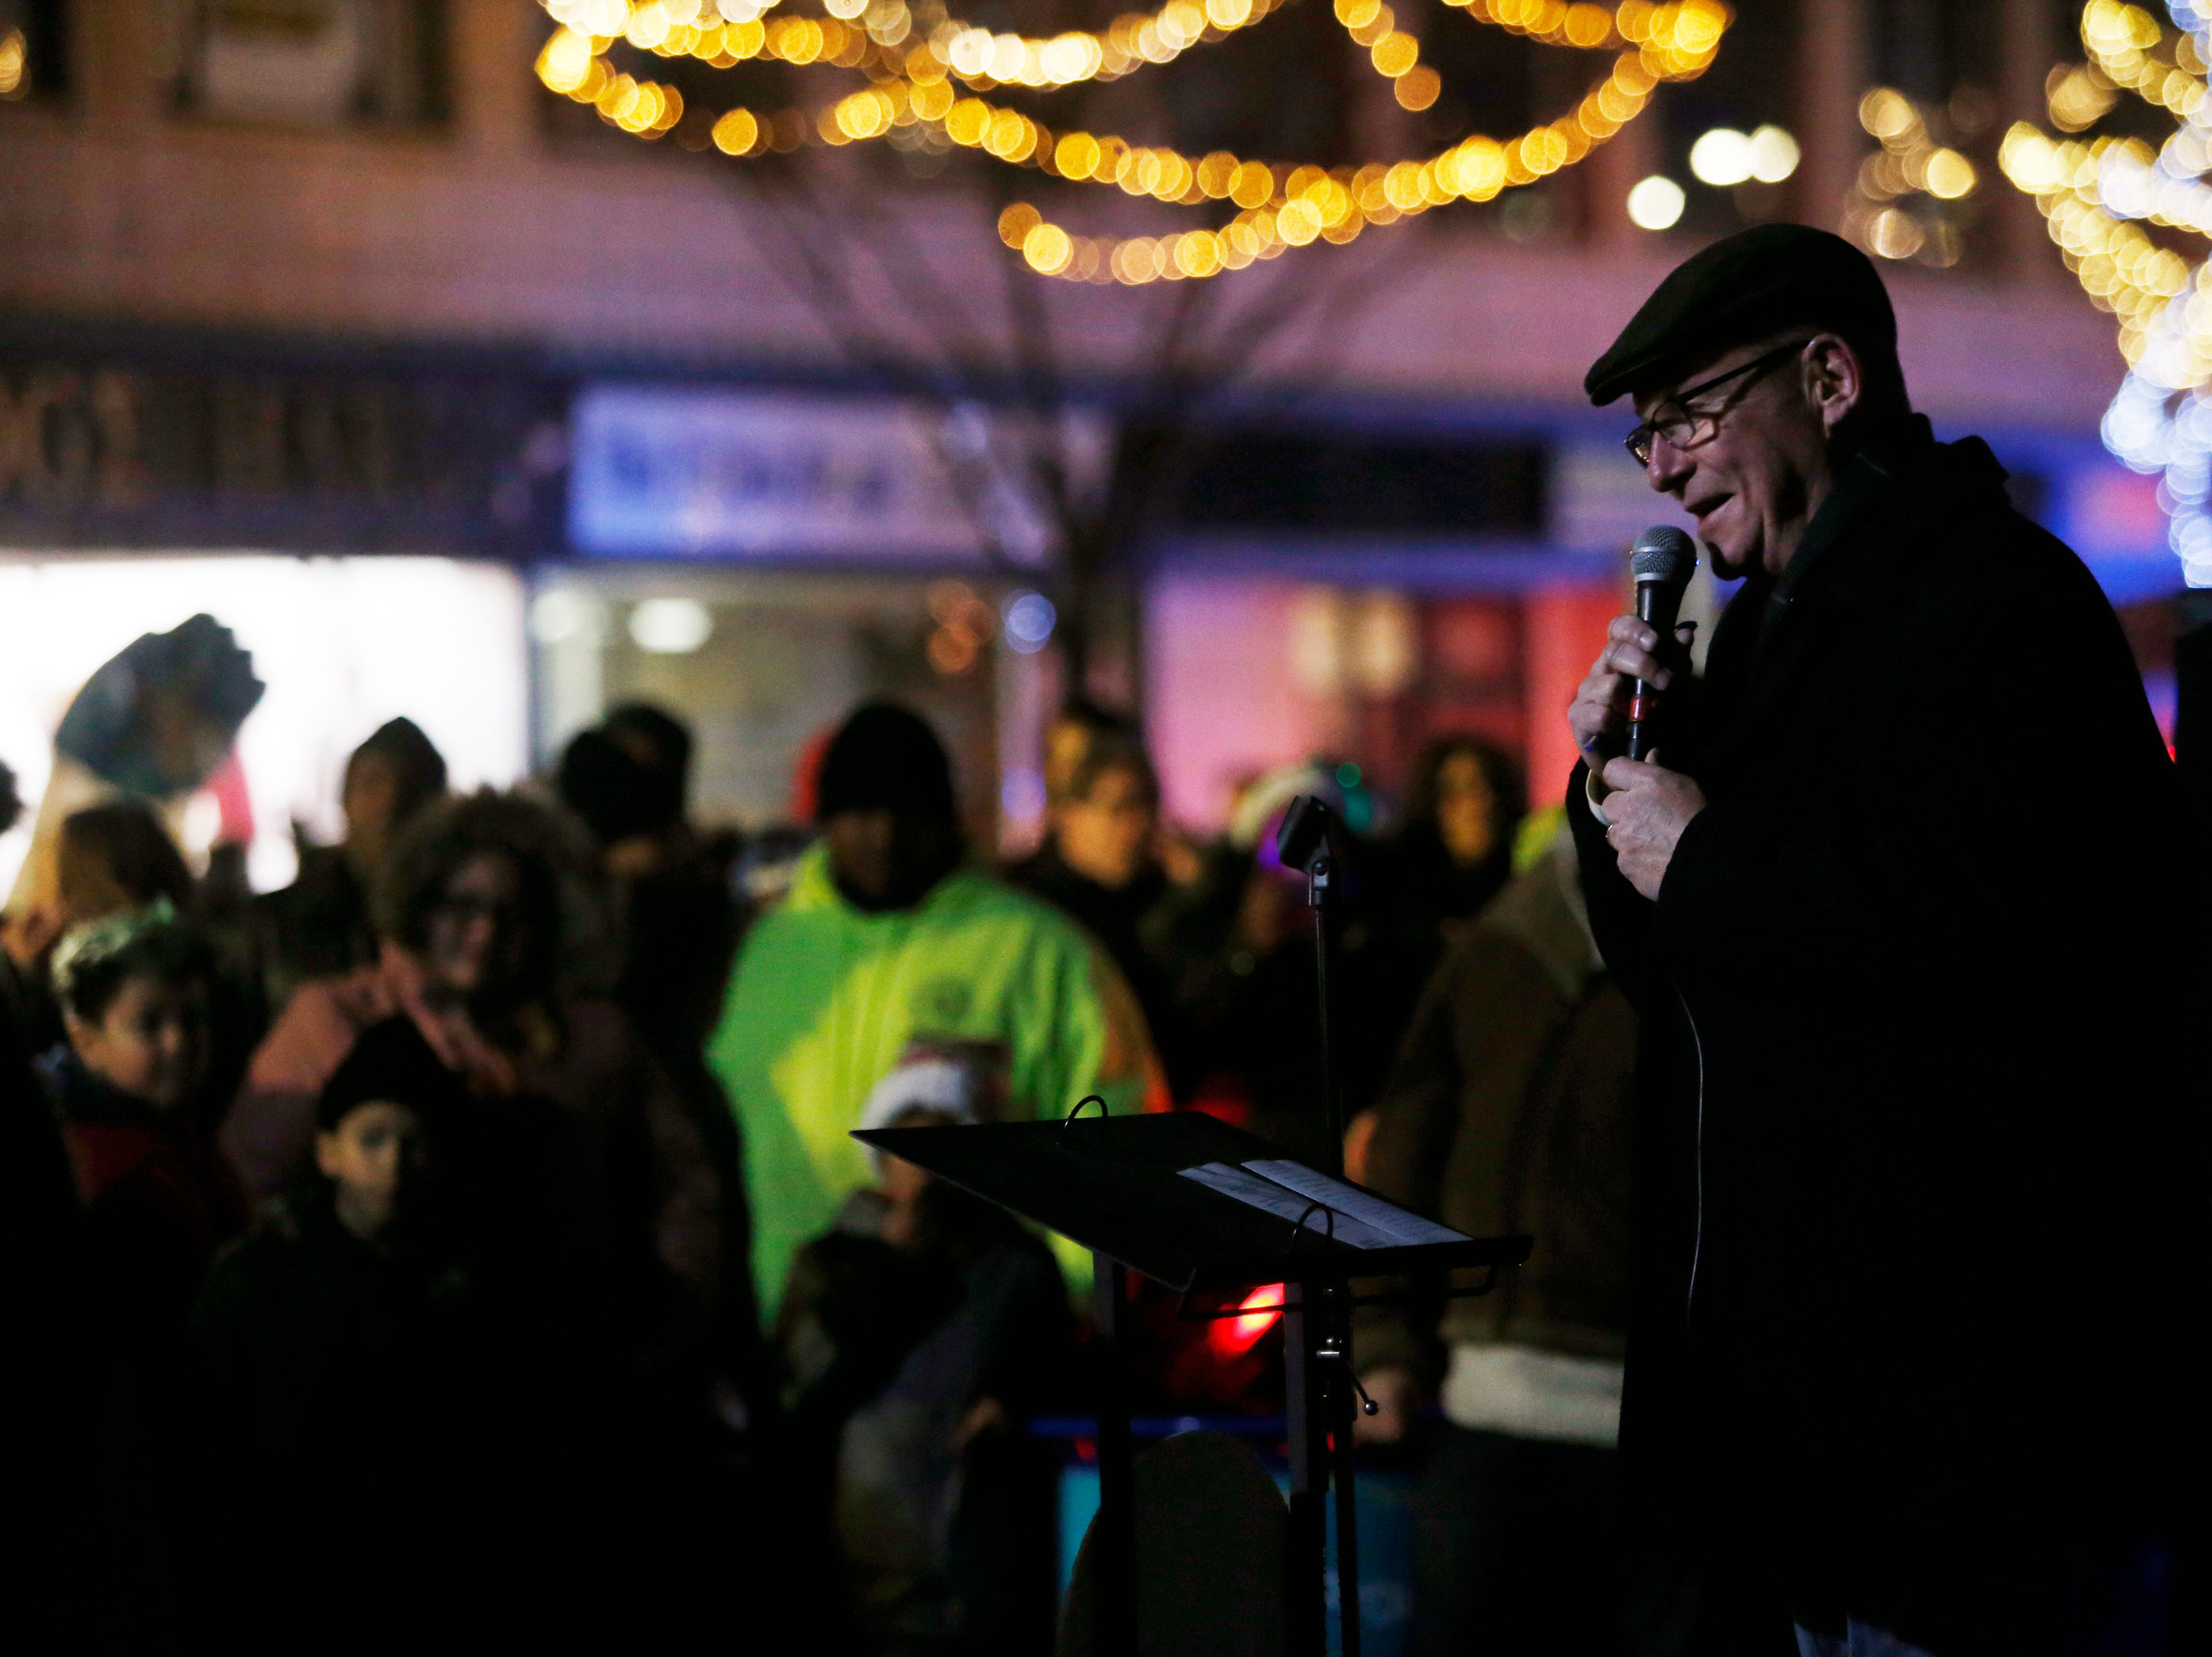 City of Poughkeepsie Mayor Rob Rolison speaks during a tree lighting at the Celebration of Lights Parade in the City of Poughkeepsie on November 30, 2018.